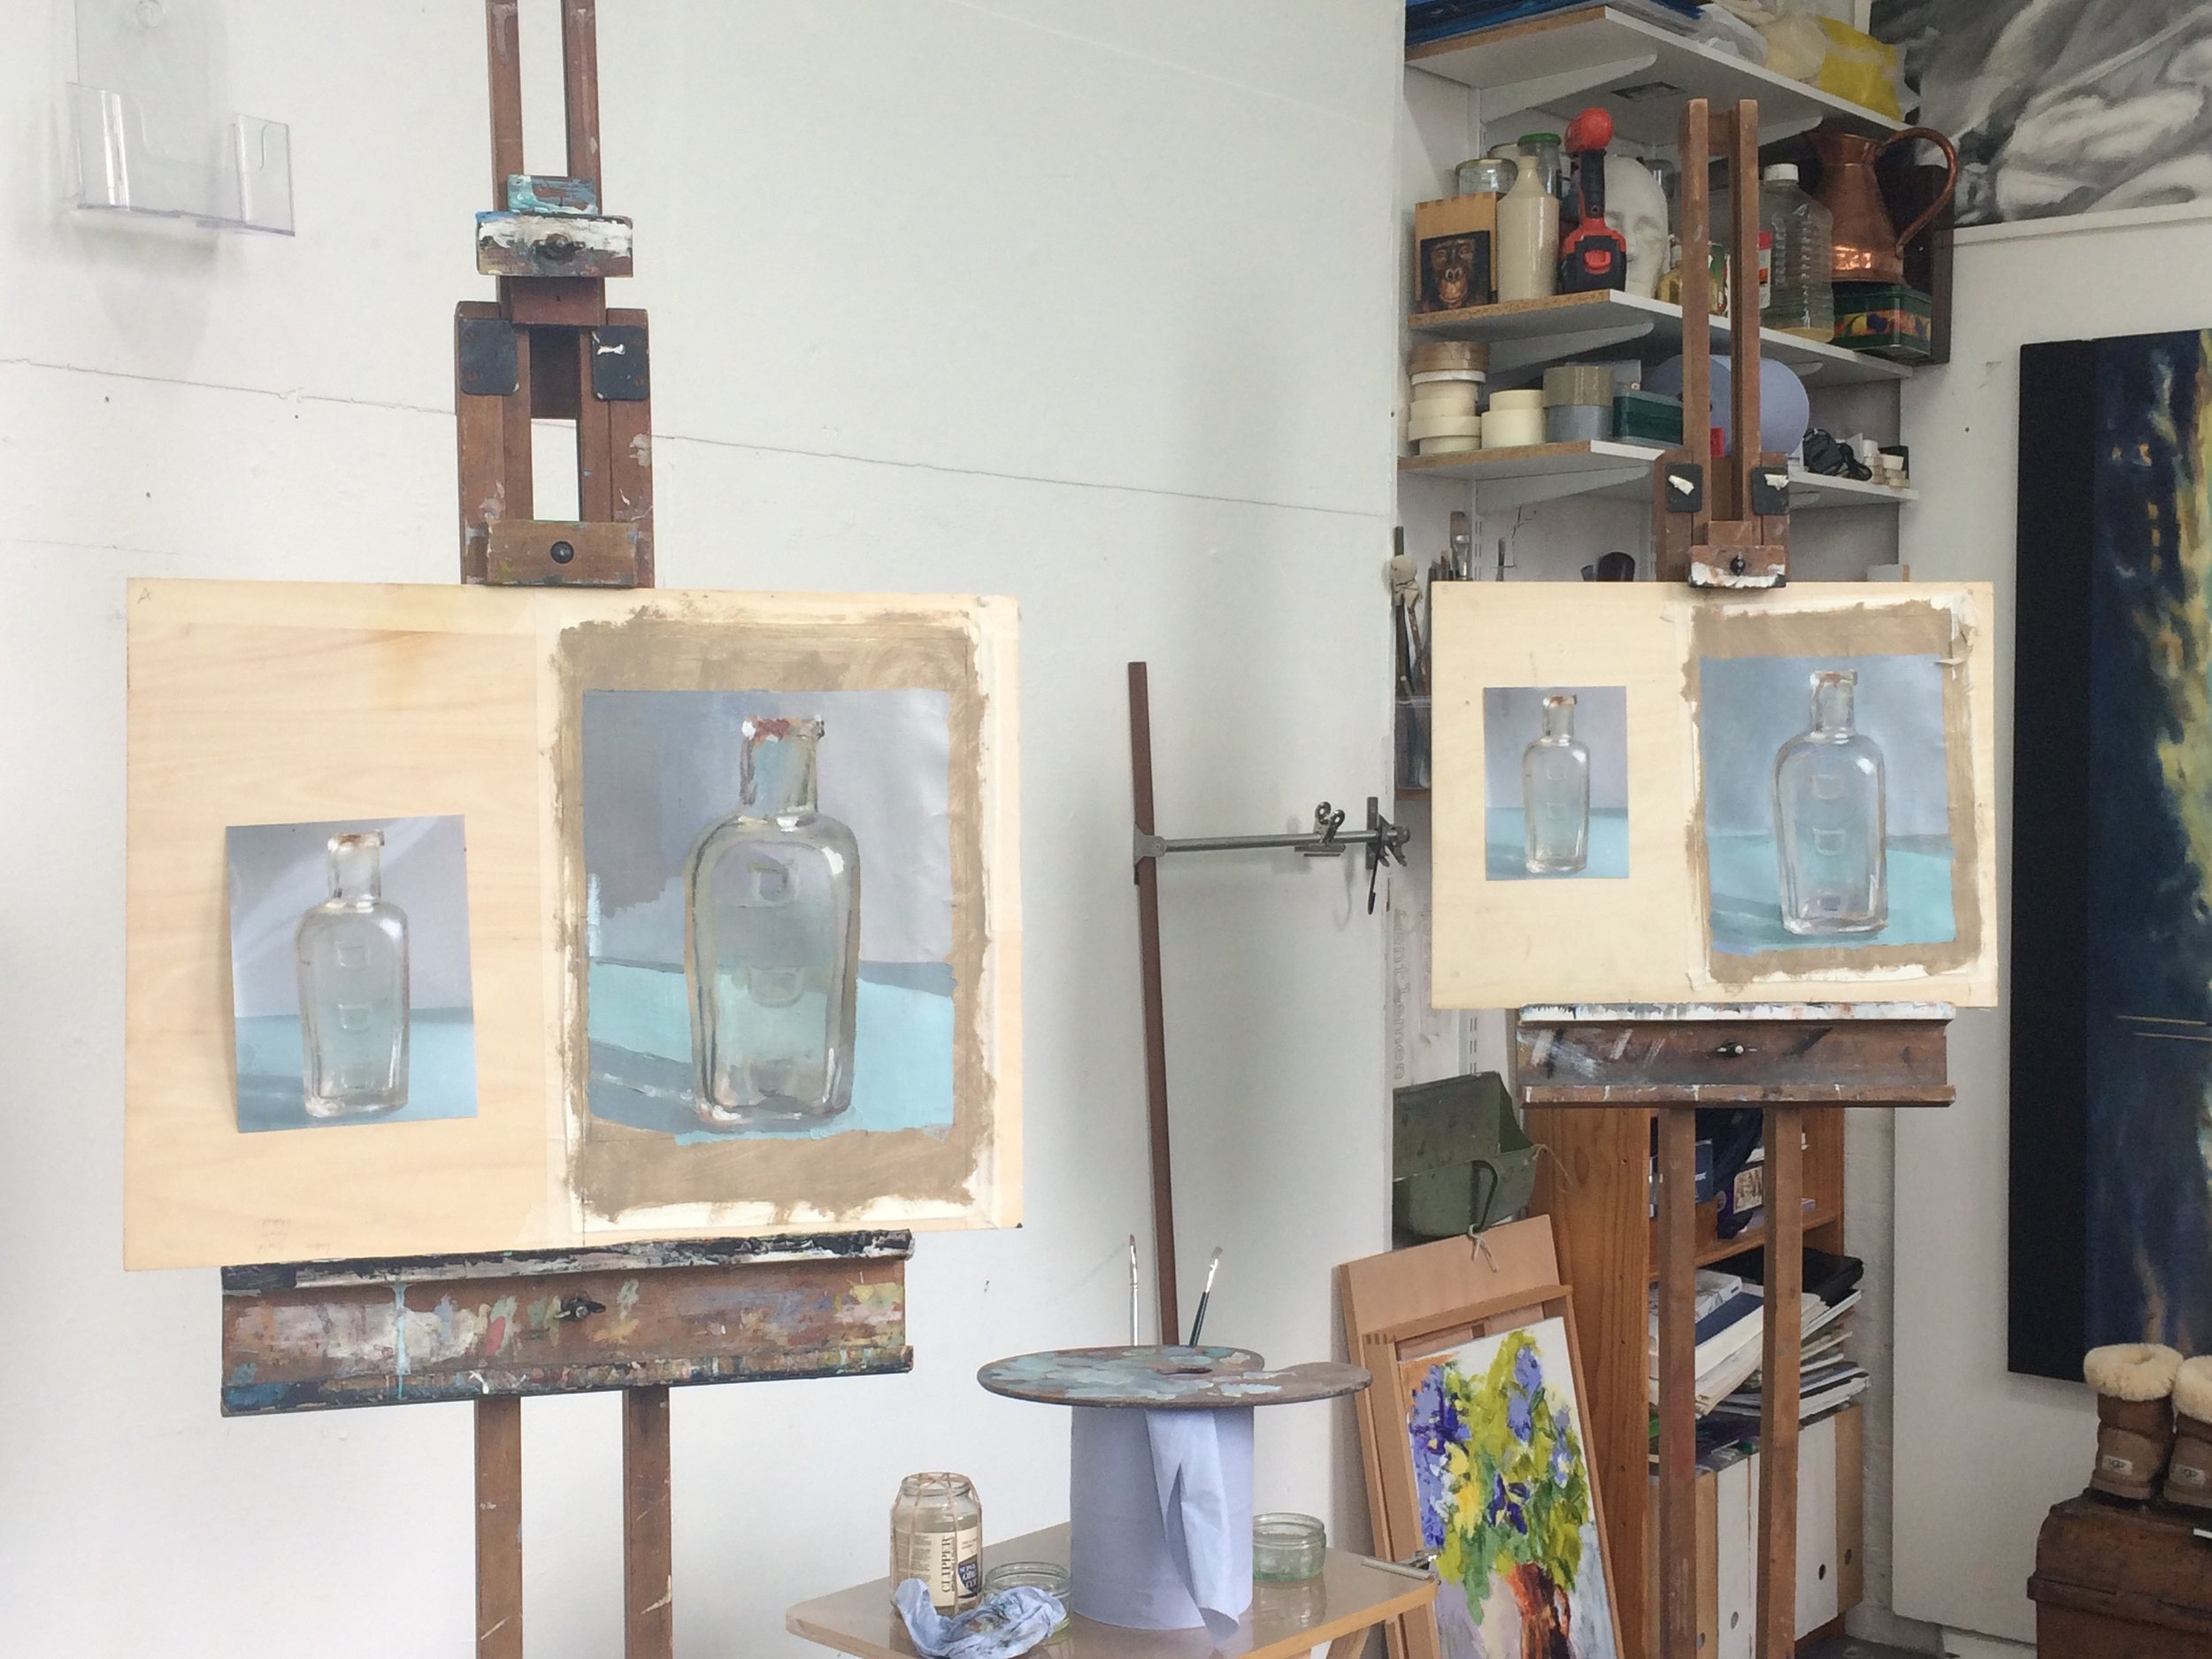 Students work in an oil painting class